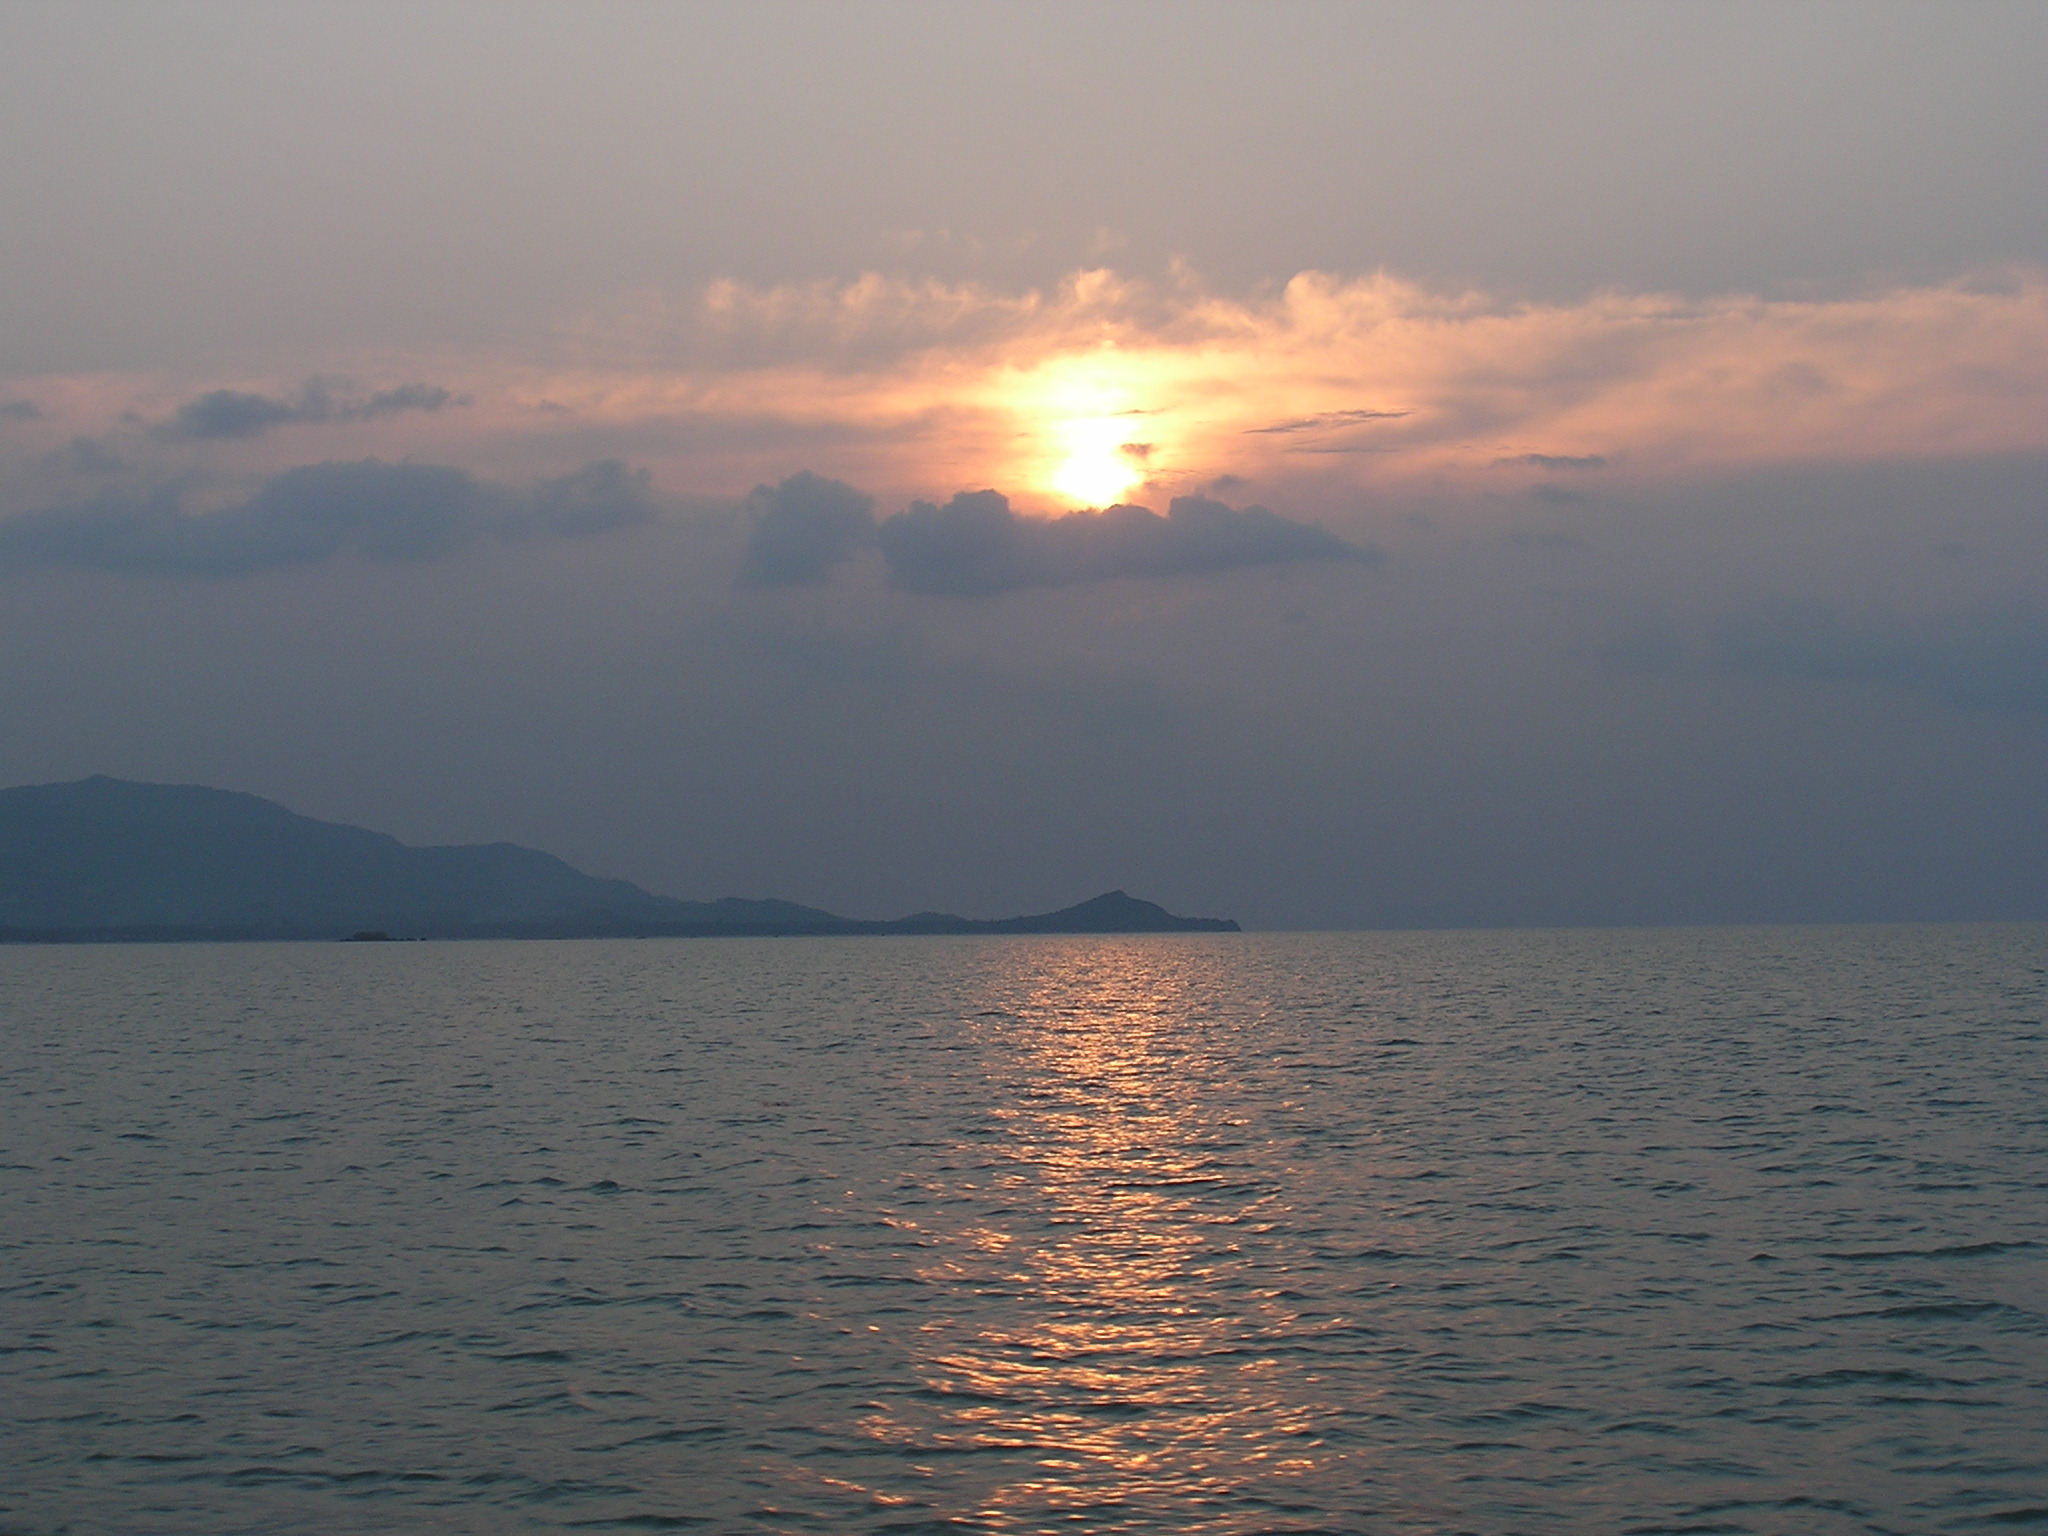 Pretty sunset over Koh Samui